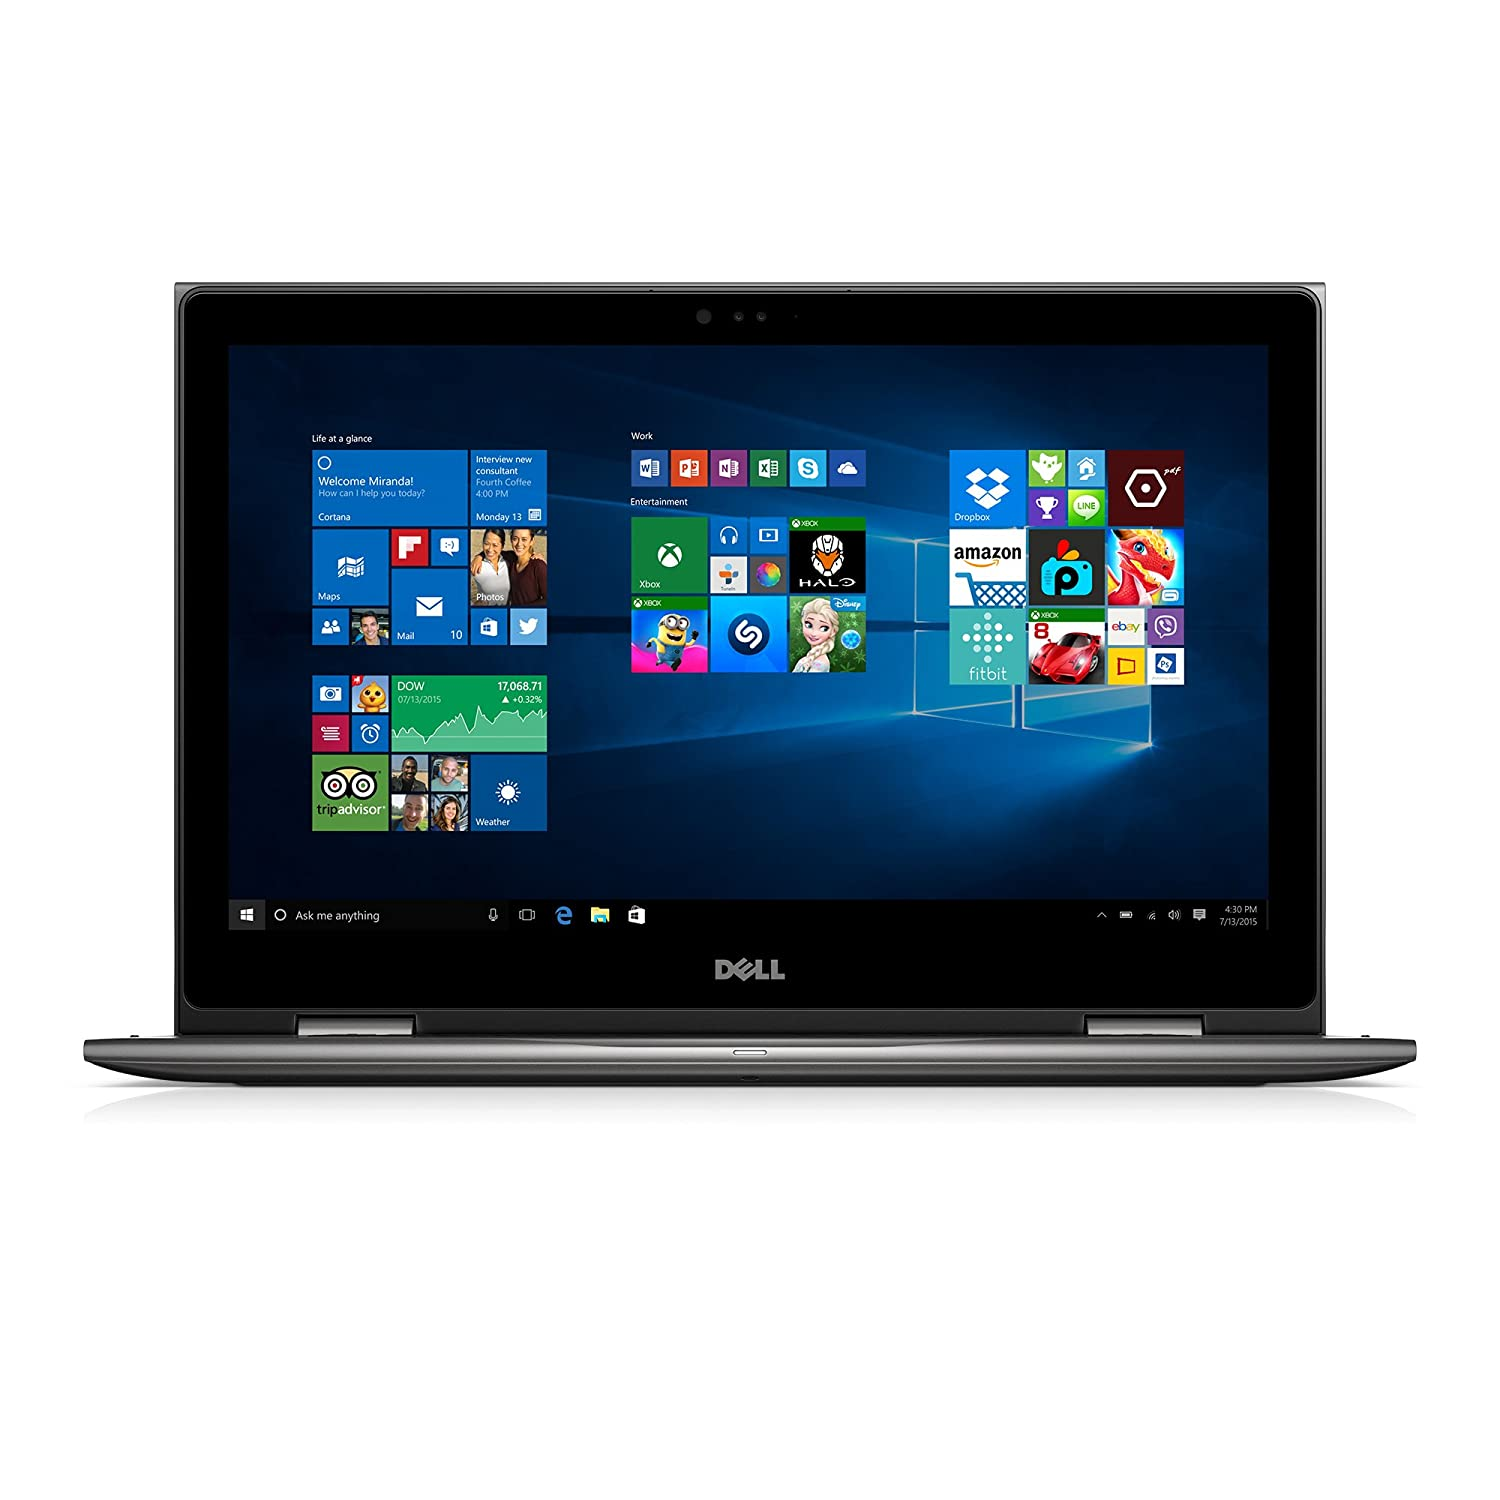 Narrowed it down to two laptops?